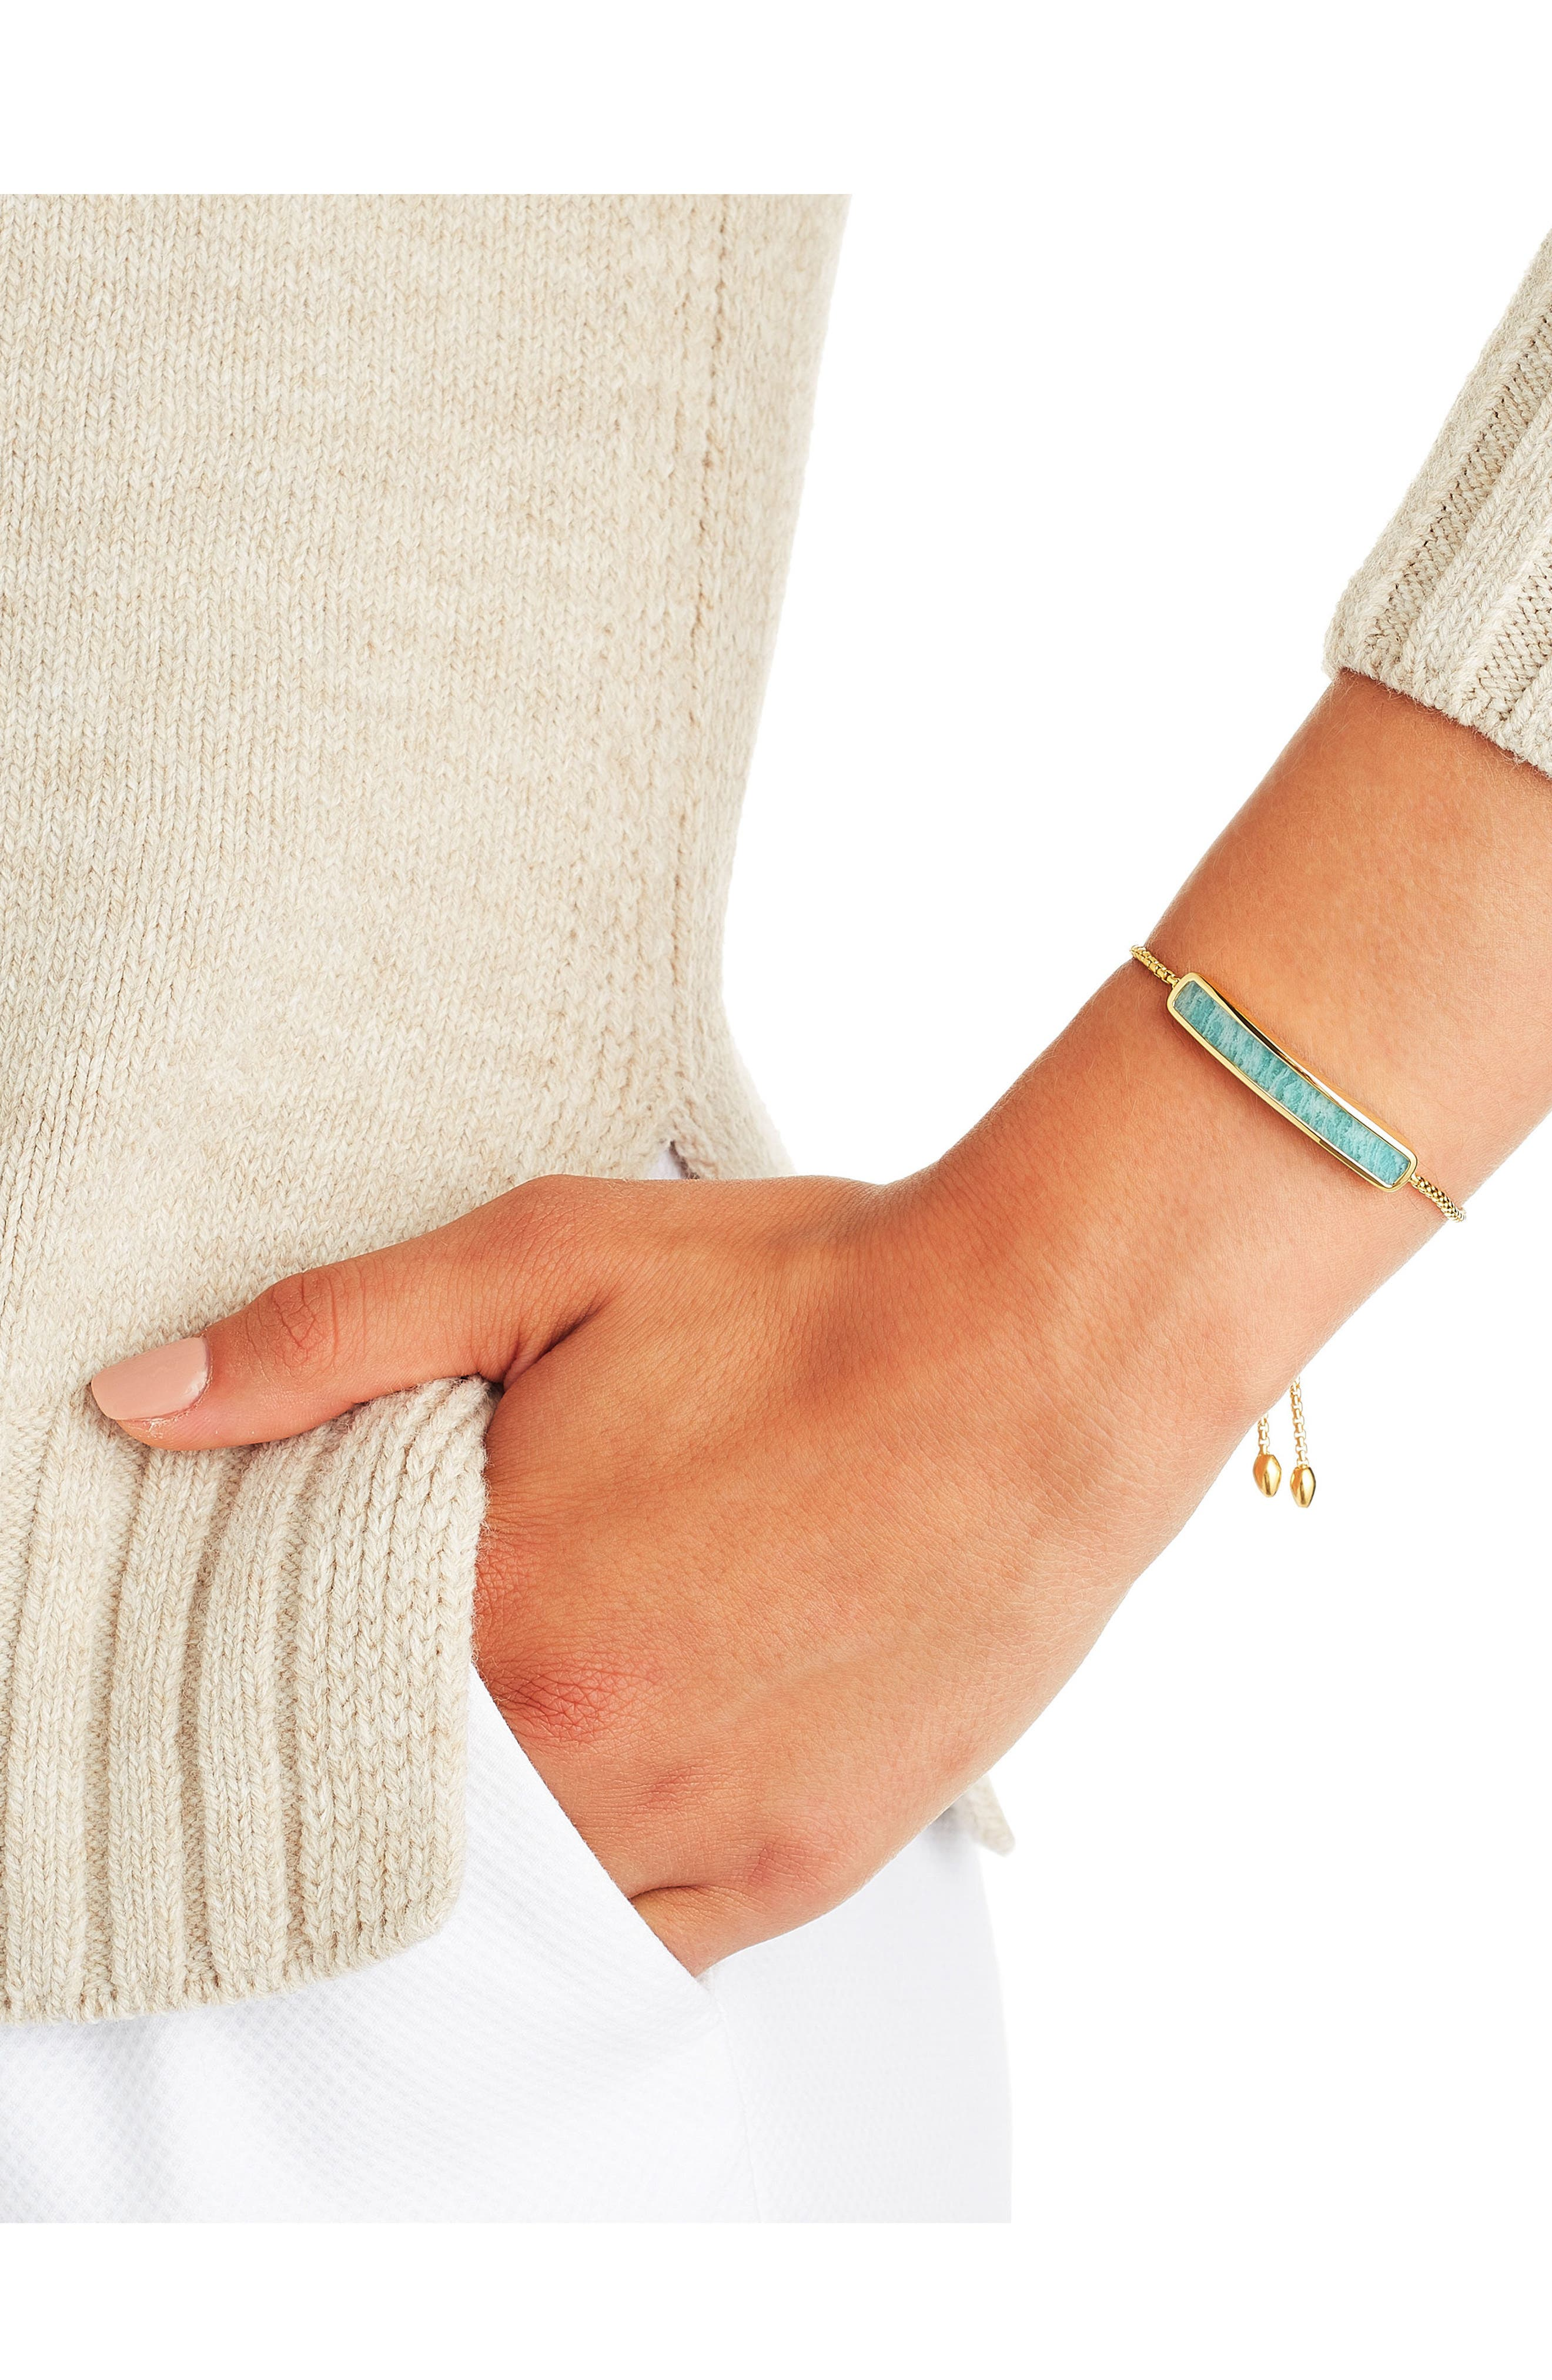 MONICA VINADER,                             Engravable Baja Stone Bracelet,                             Alternate thumbnail 3, color,                             GOLD/ AMAZONITE